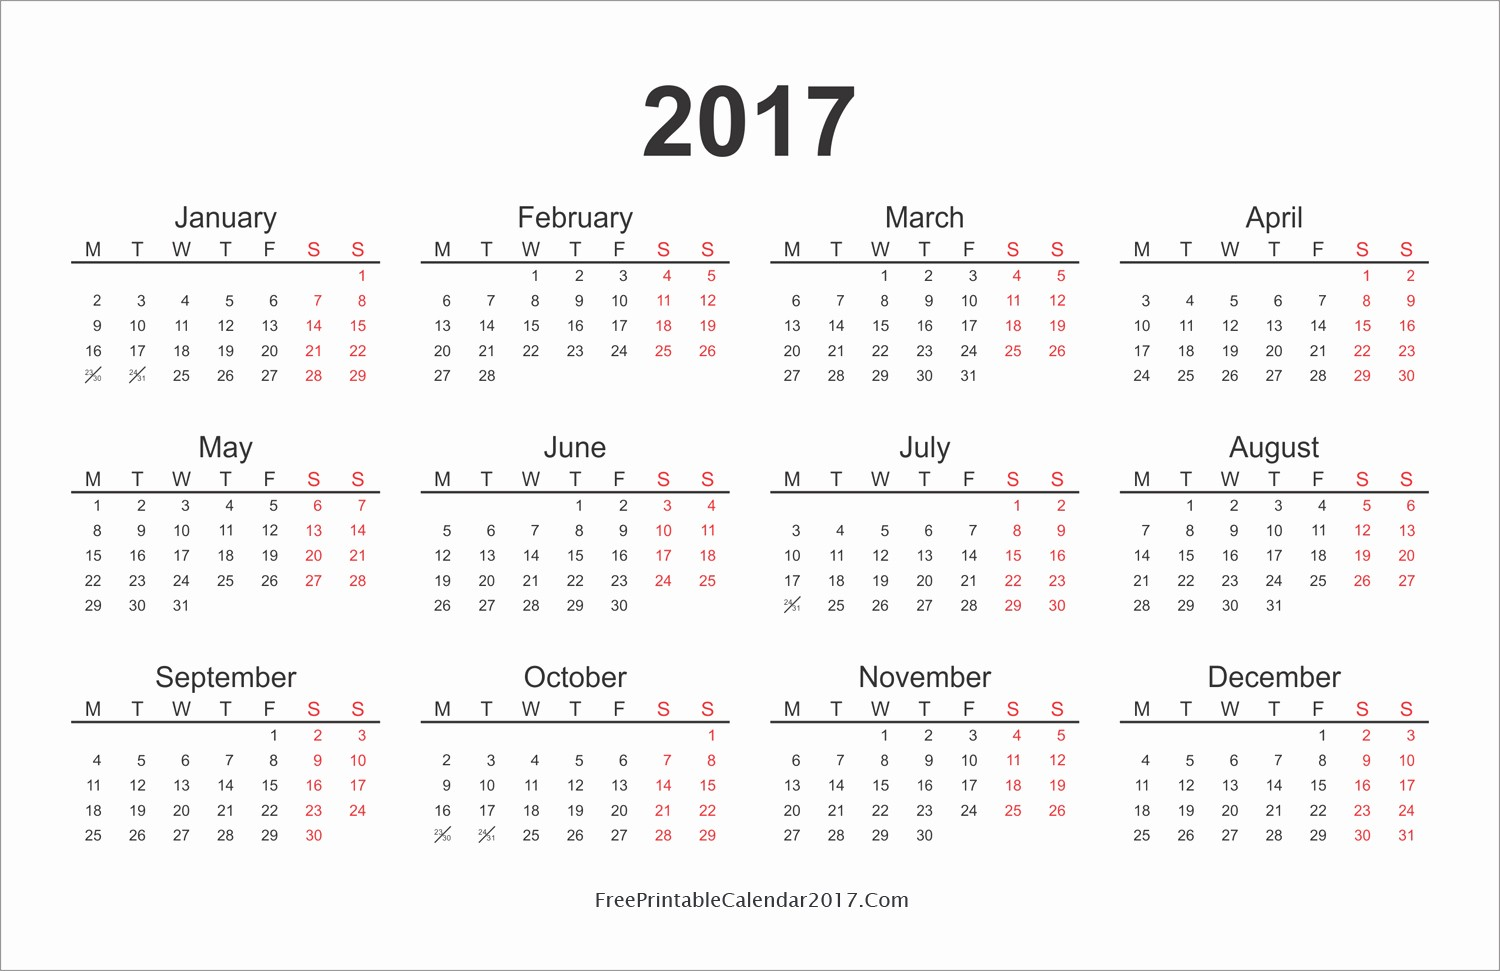 Free Printable Annual Calendar 2017 New Yearly Calendar 2017 Printable – Templates Free Printable